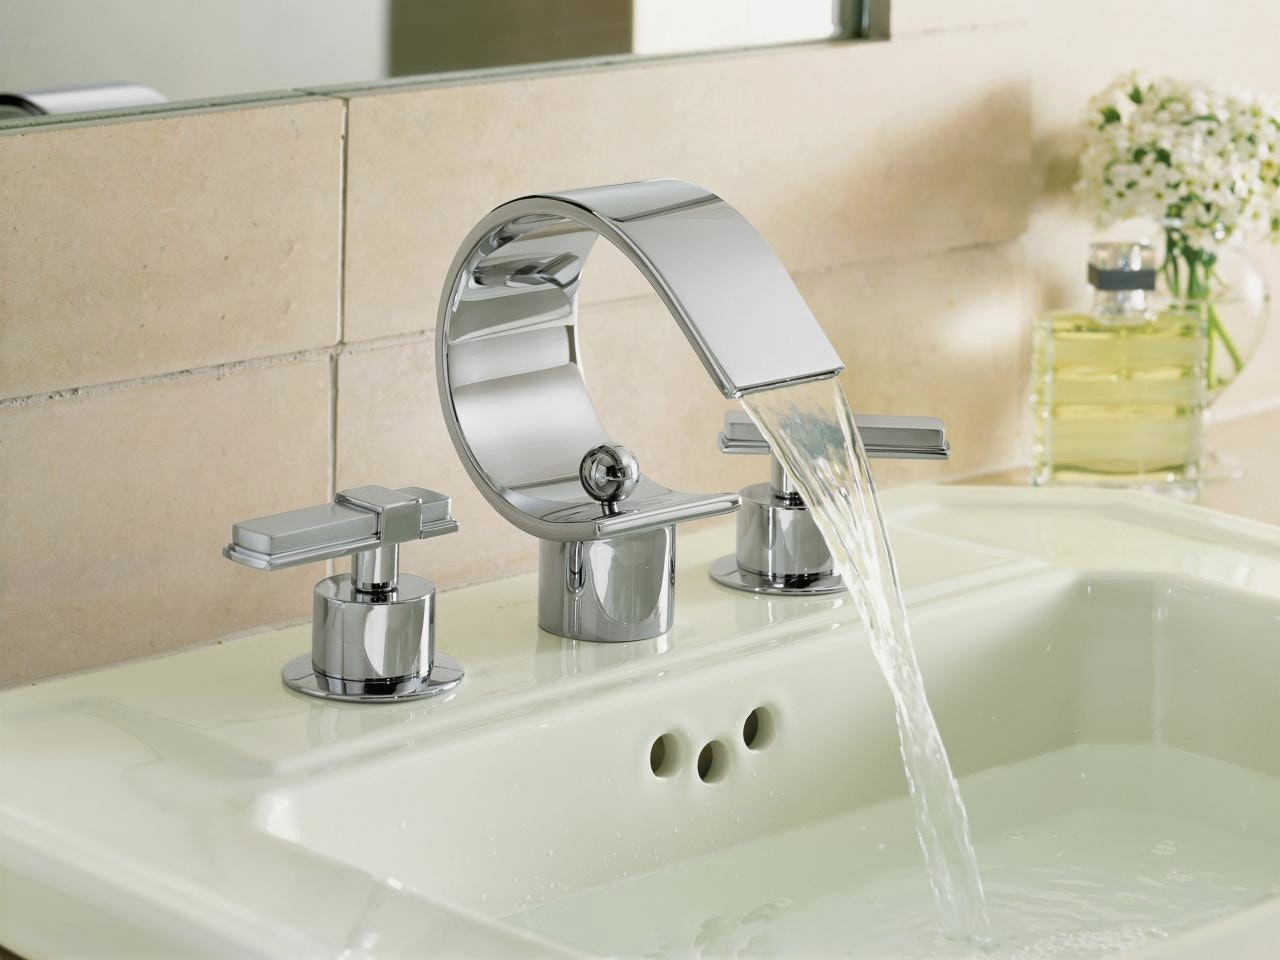 How To Choose The Best-Quality Bathroom Faucets?